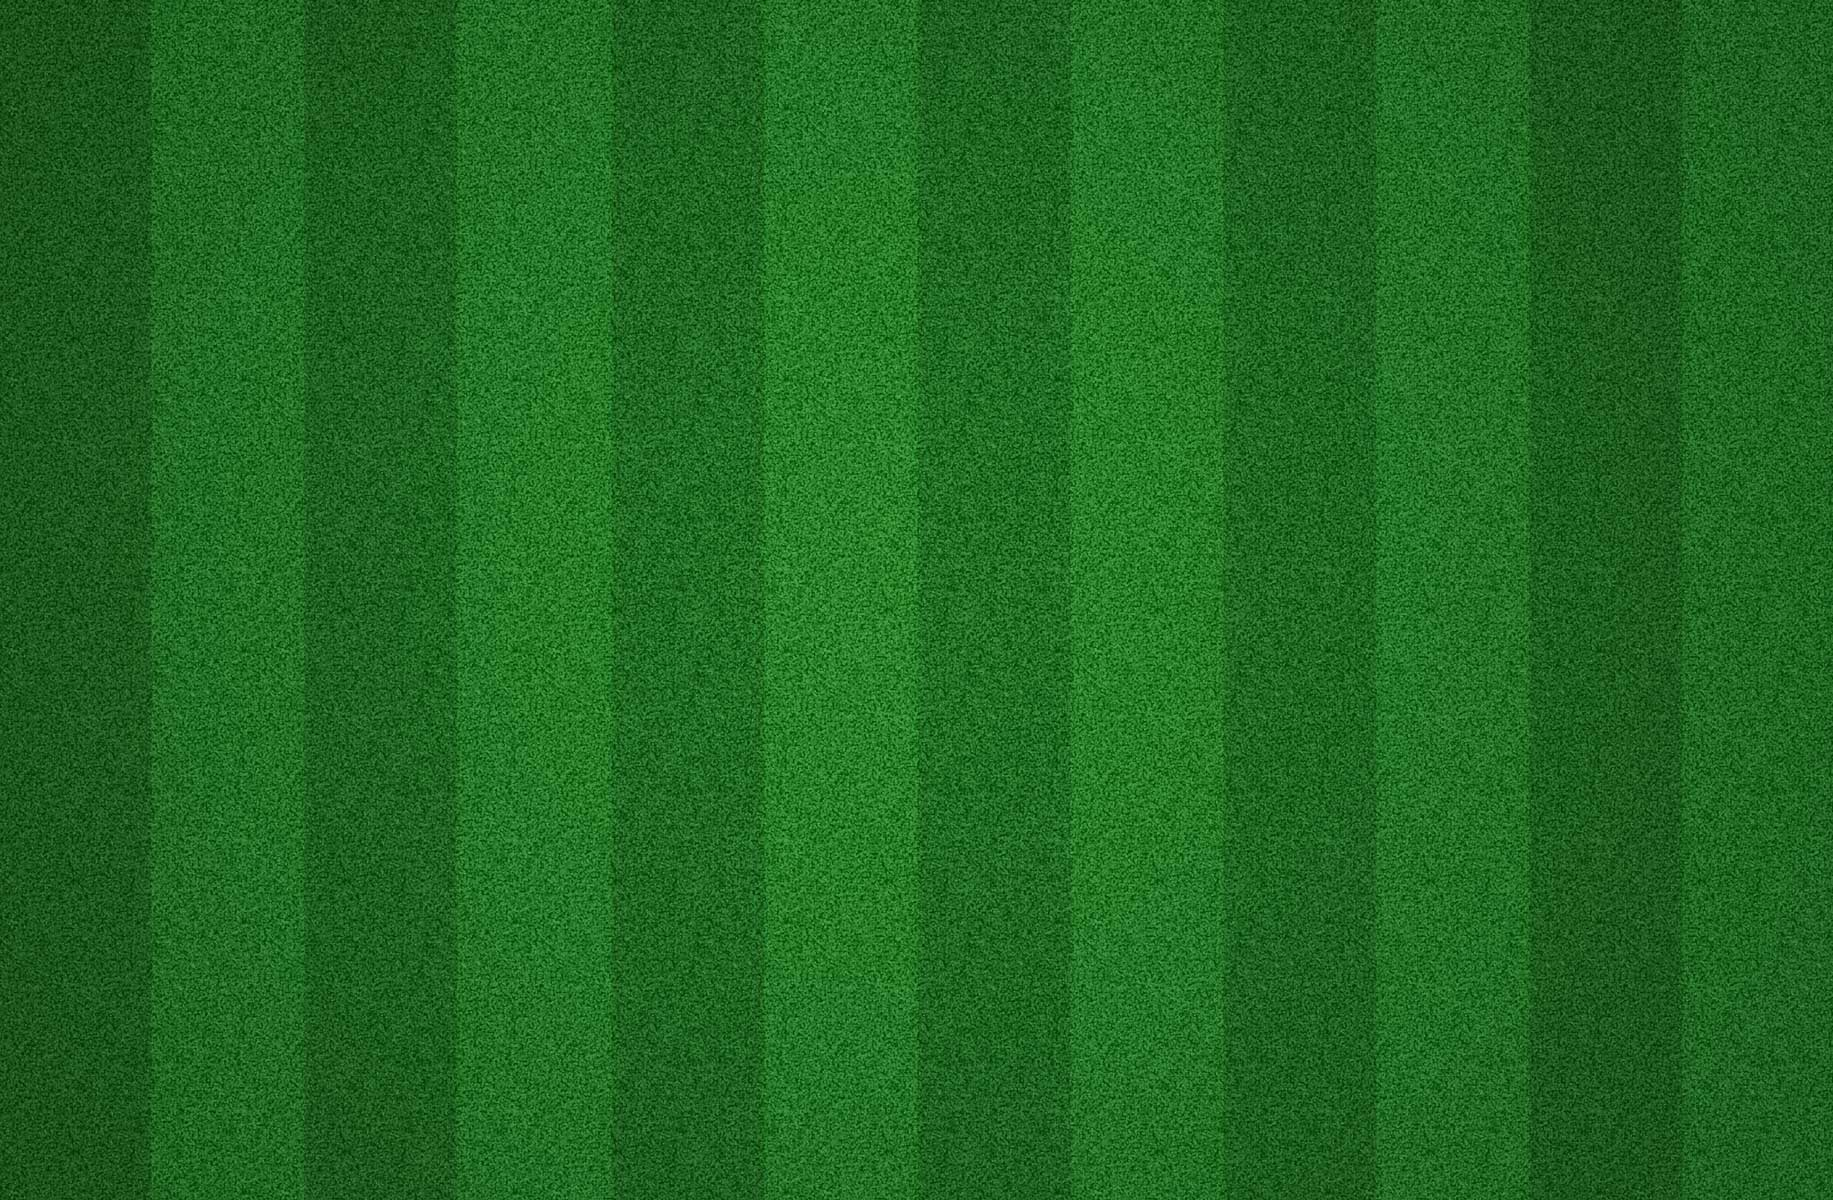 field-stripes